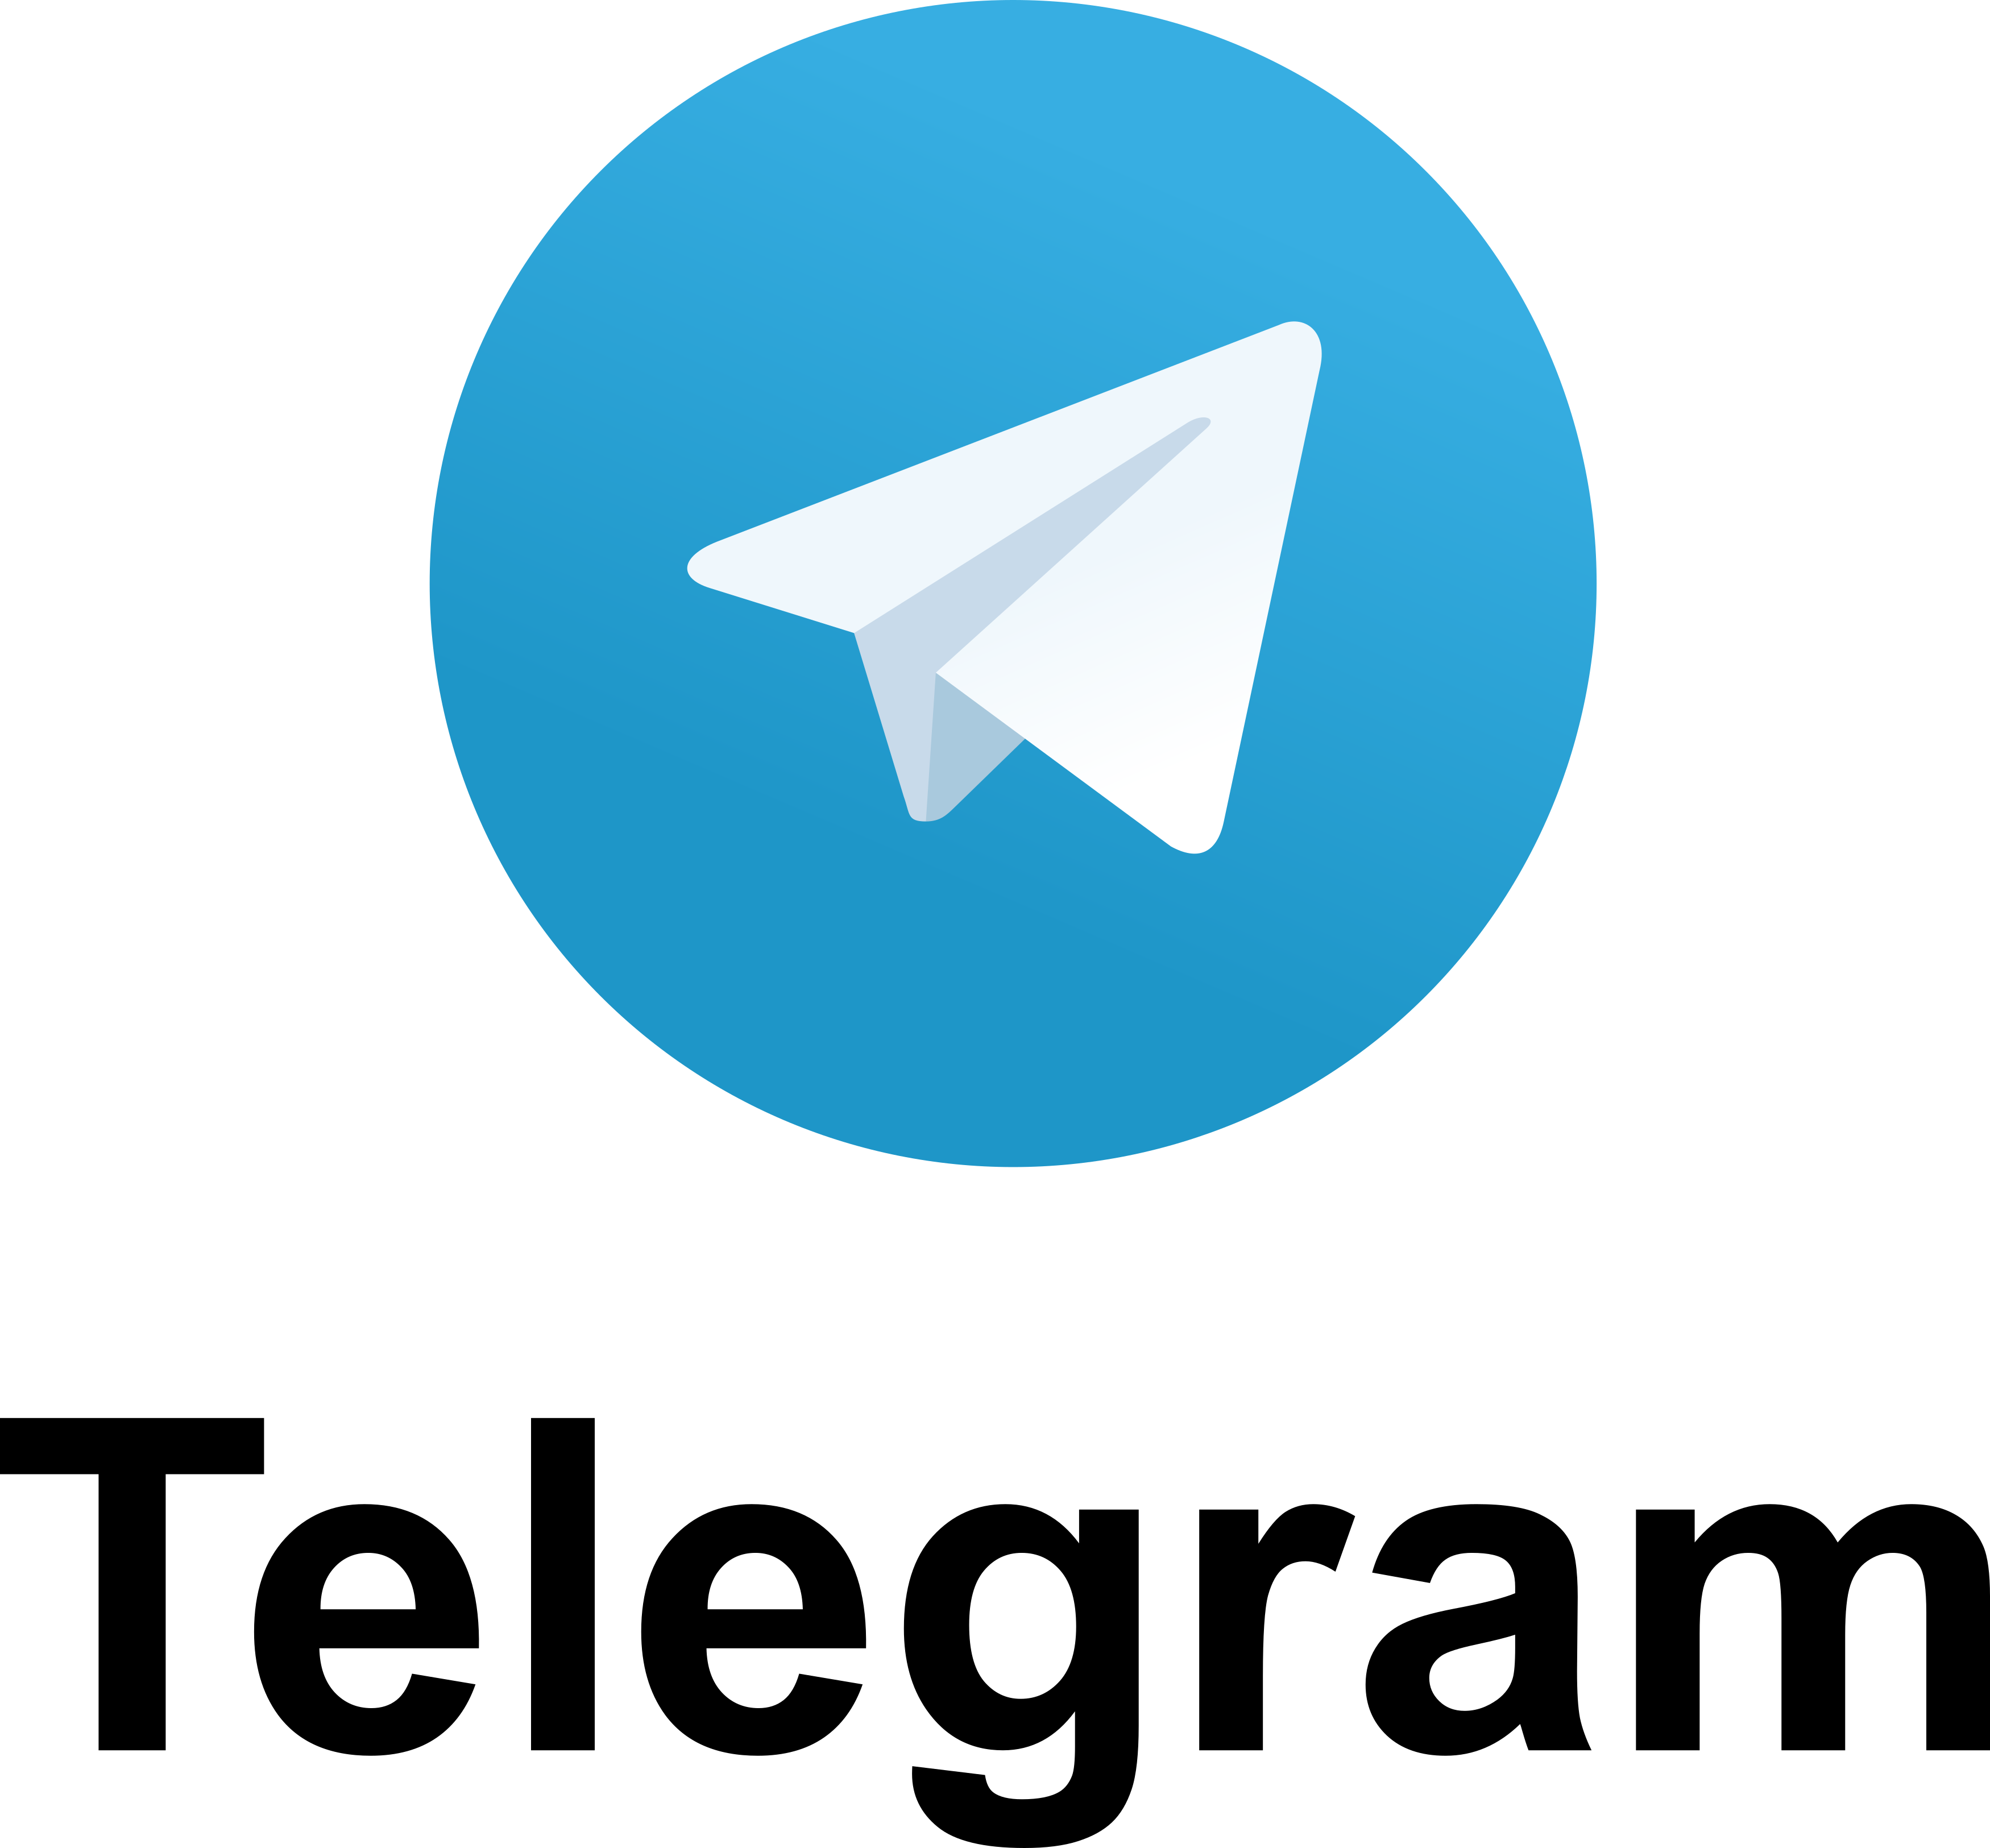 telegram PNG28